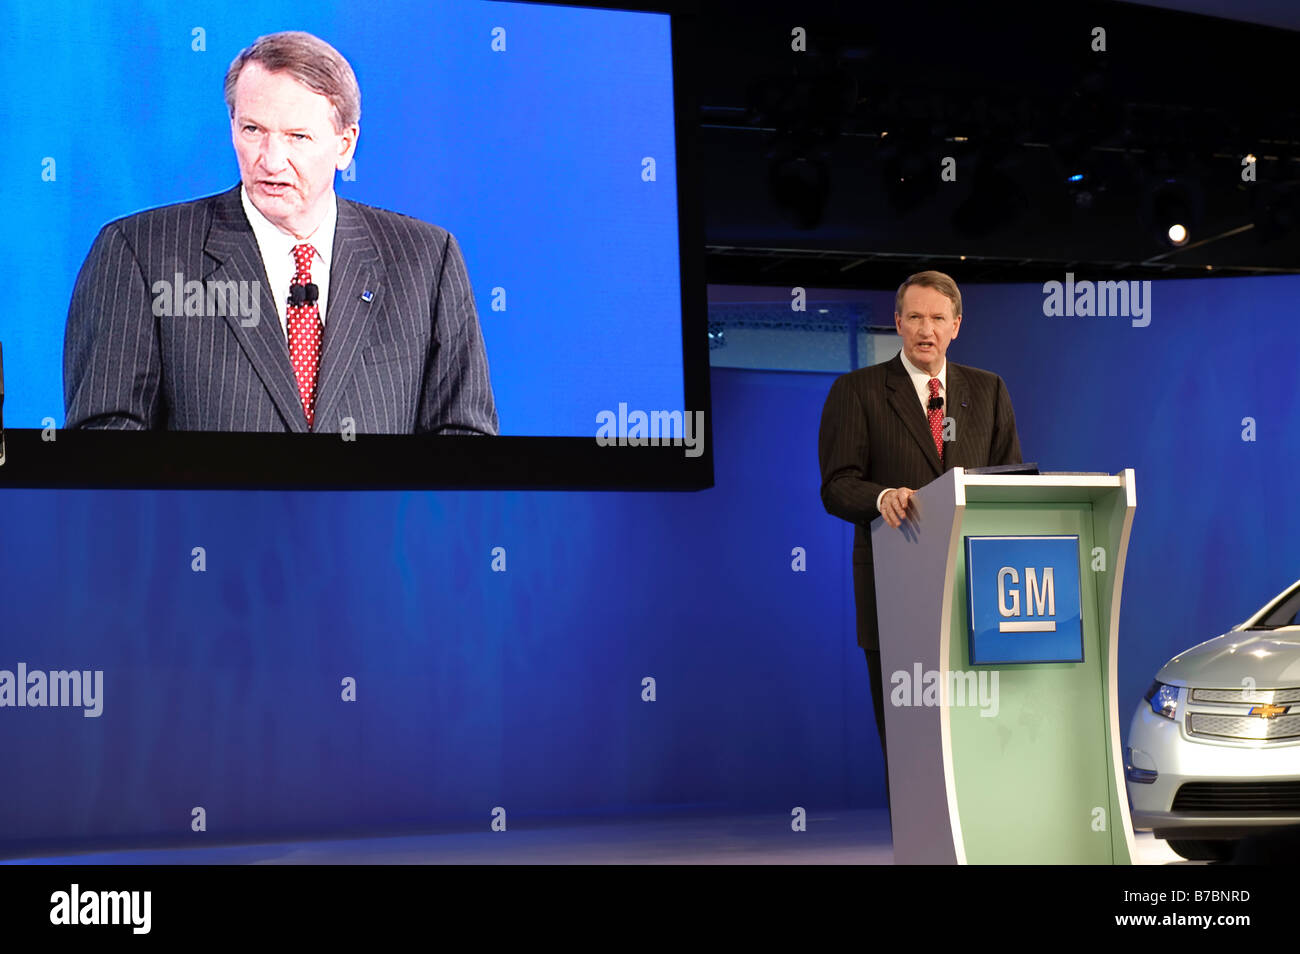 General Motors Chairman and Chief Executive Officer Rick Wagoner at the 2009 North American International Auto Show Stock Photo